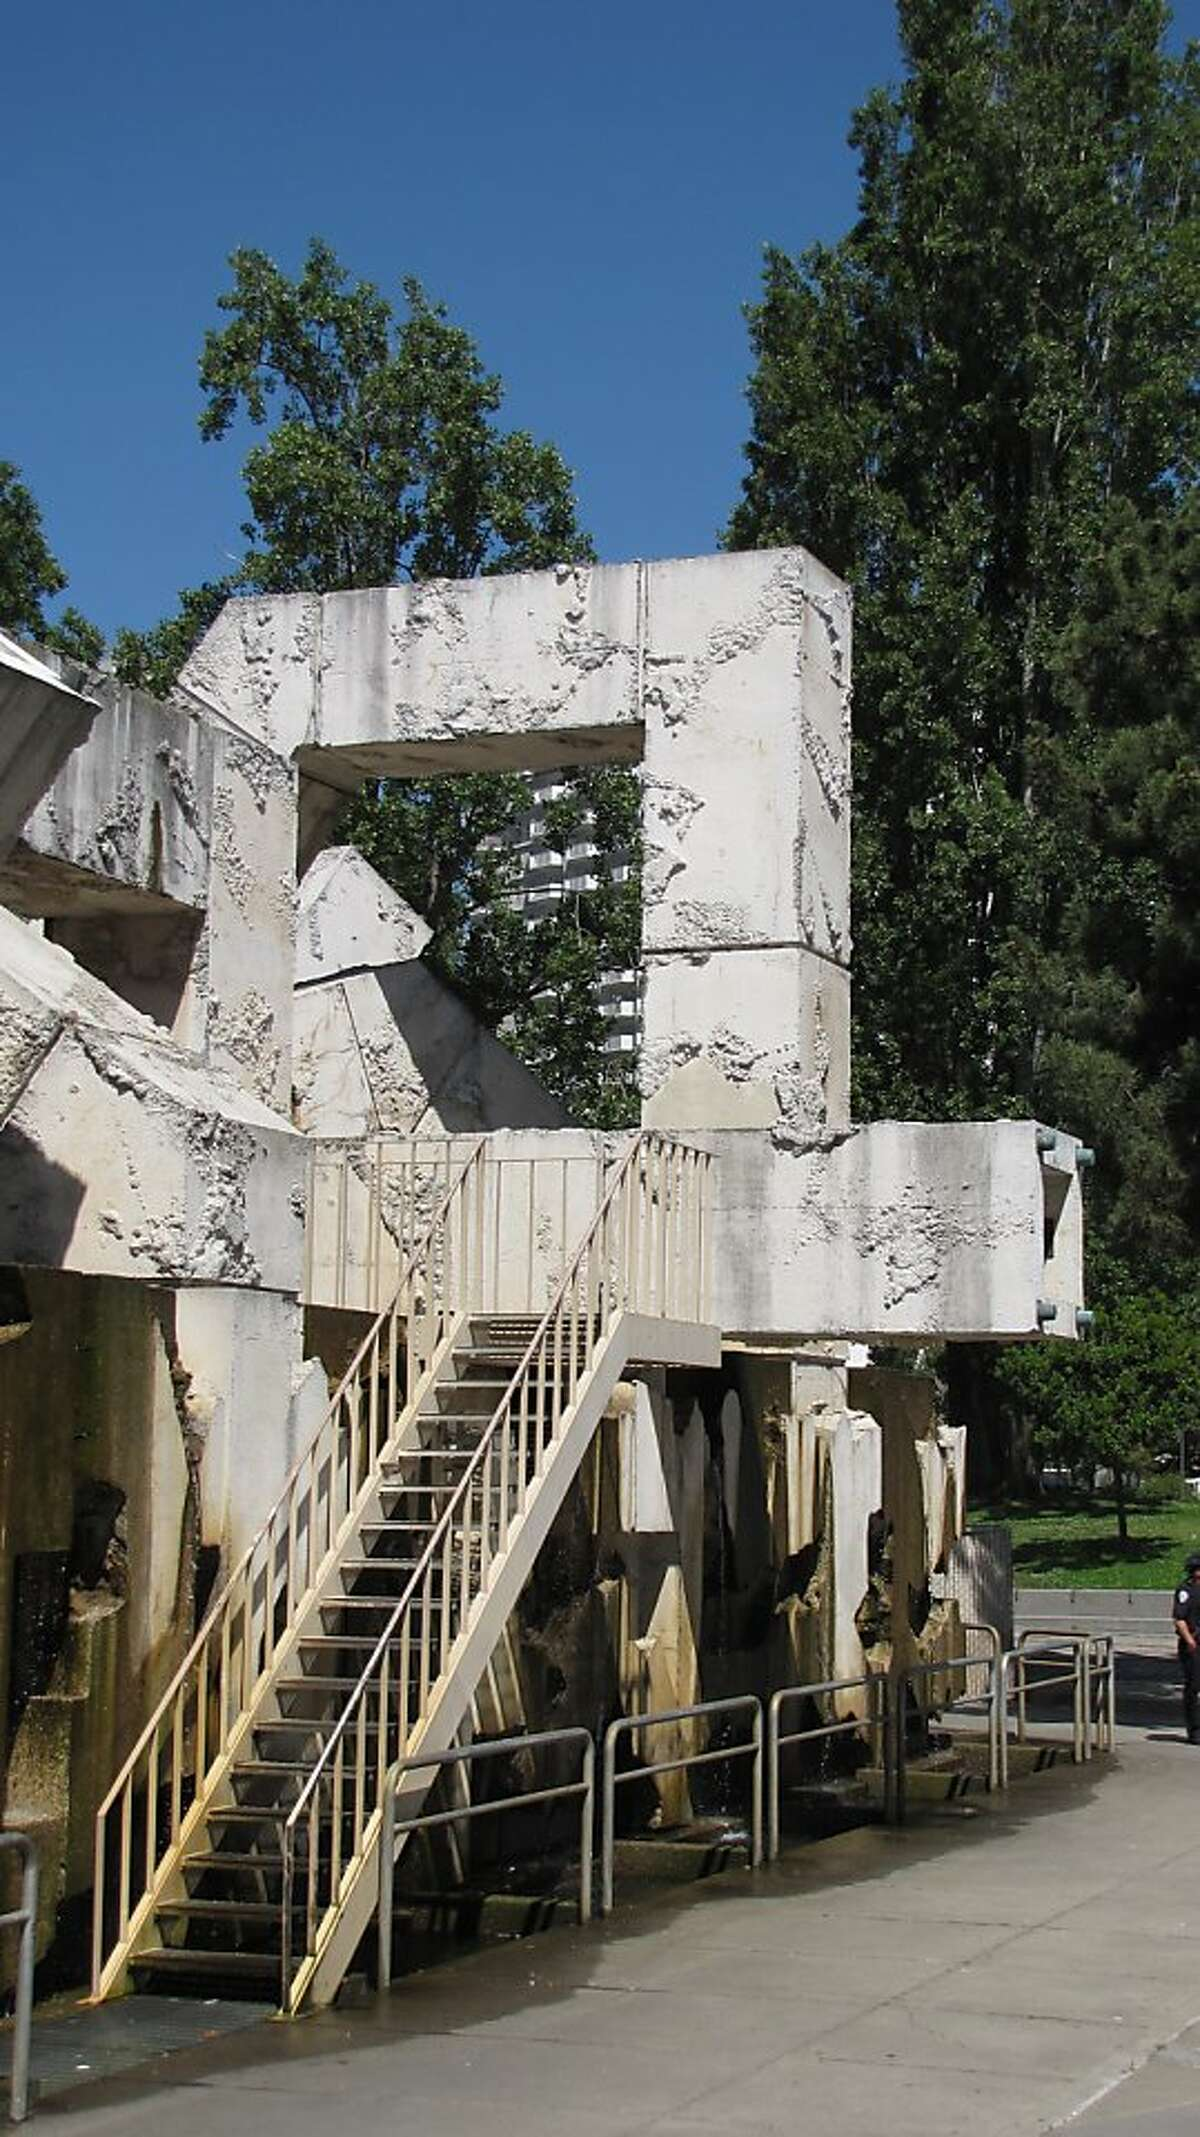 The Vallaincourt Fountain opened in 1971 alongside the Embarcadero Freeway, a determinedly harsh counterpart to the hulking elevated decks. Now the freeway is gone and the sculpture remains -- a contextual design for a context that no longer exists.